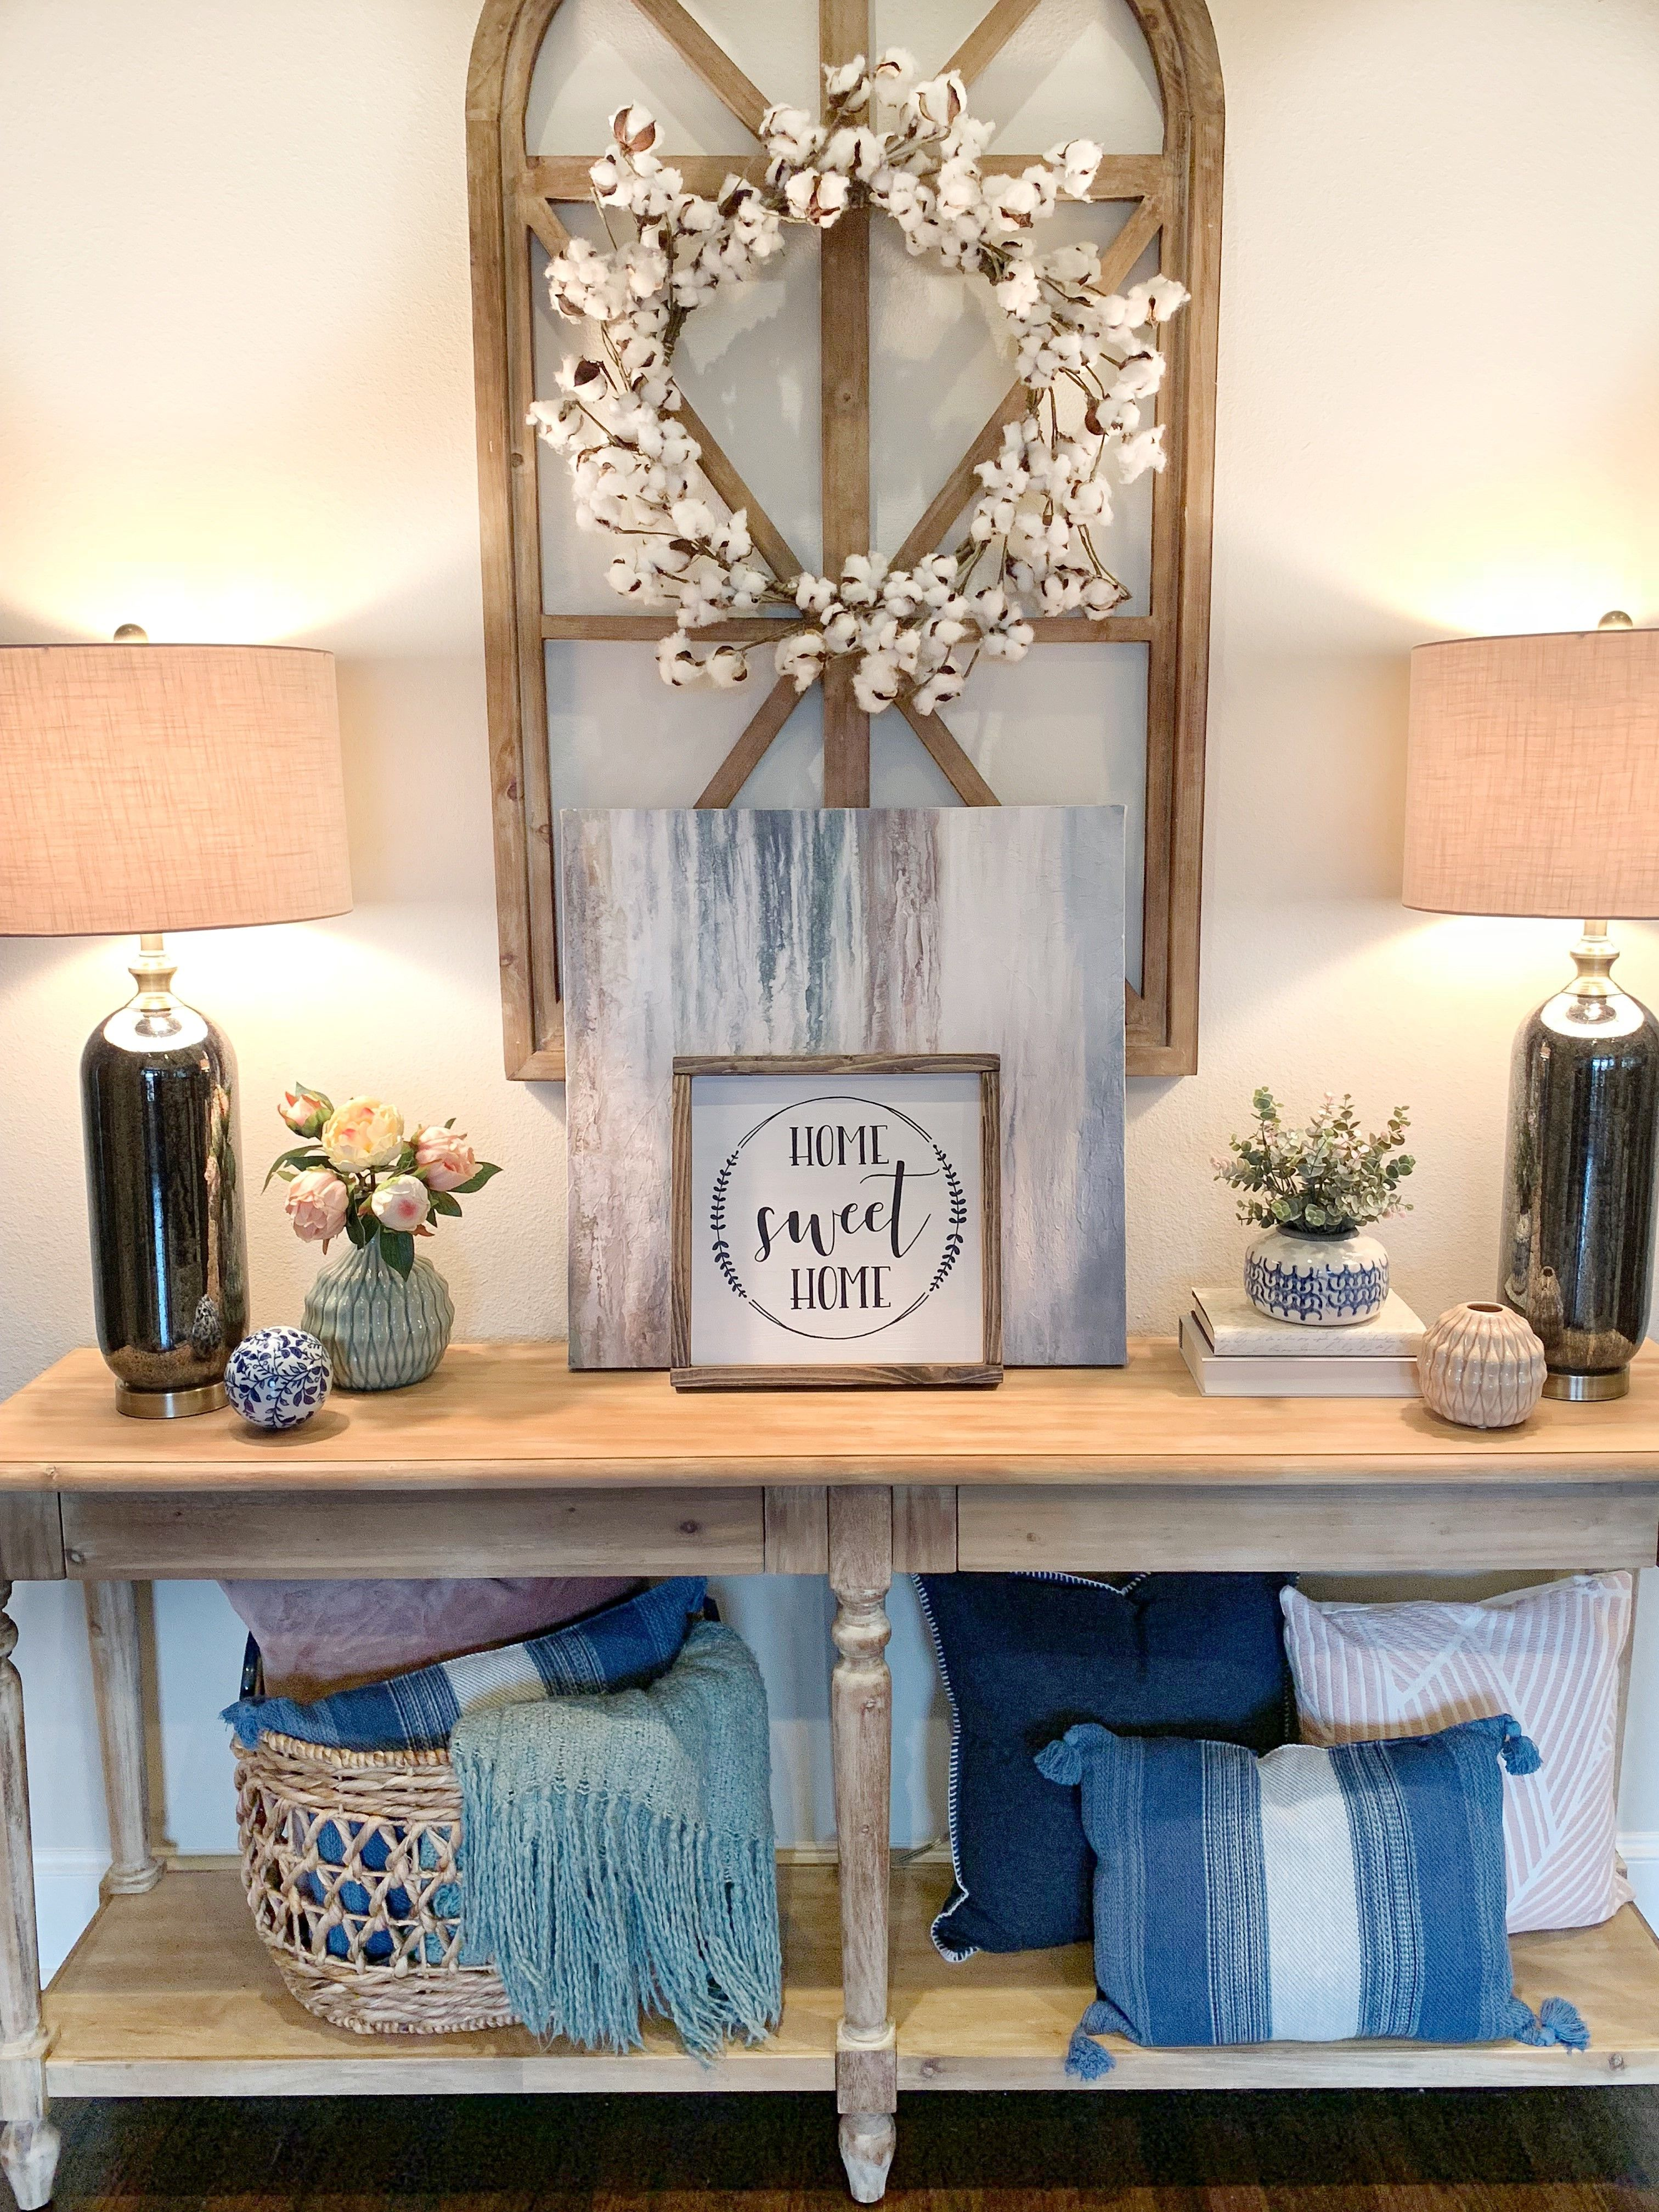 Style Your Entryway Table With Home Decor Pieces You Love And Lamps That Light The Way Thanks For The Inspo Stager Roz With Images Kirkland Home Decor Home Decor